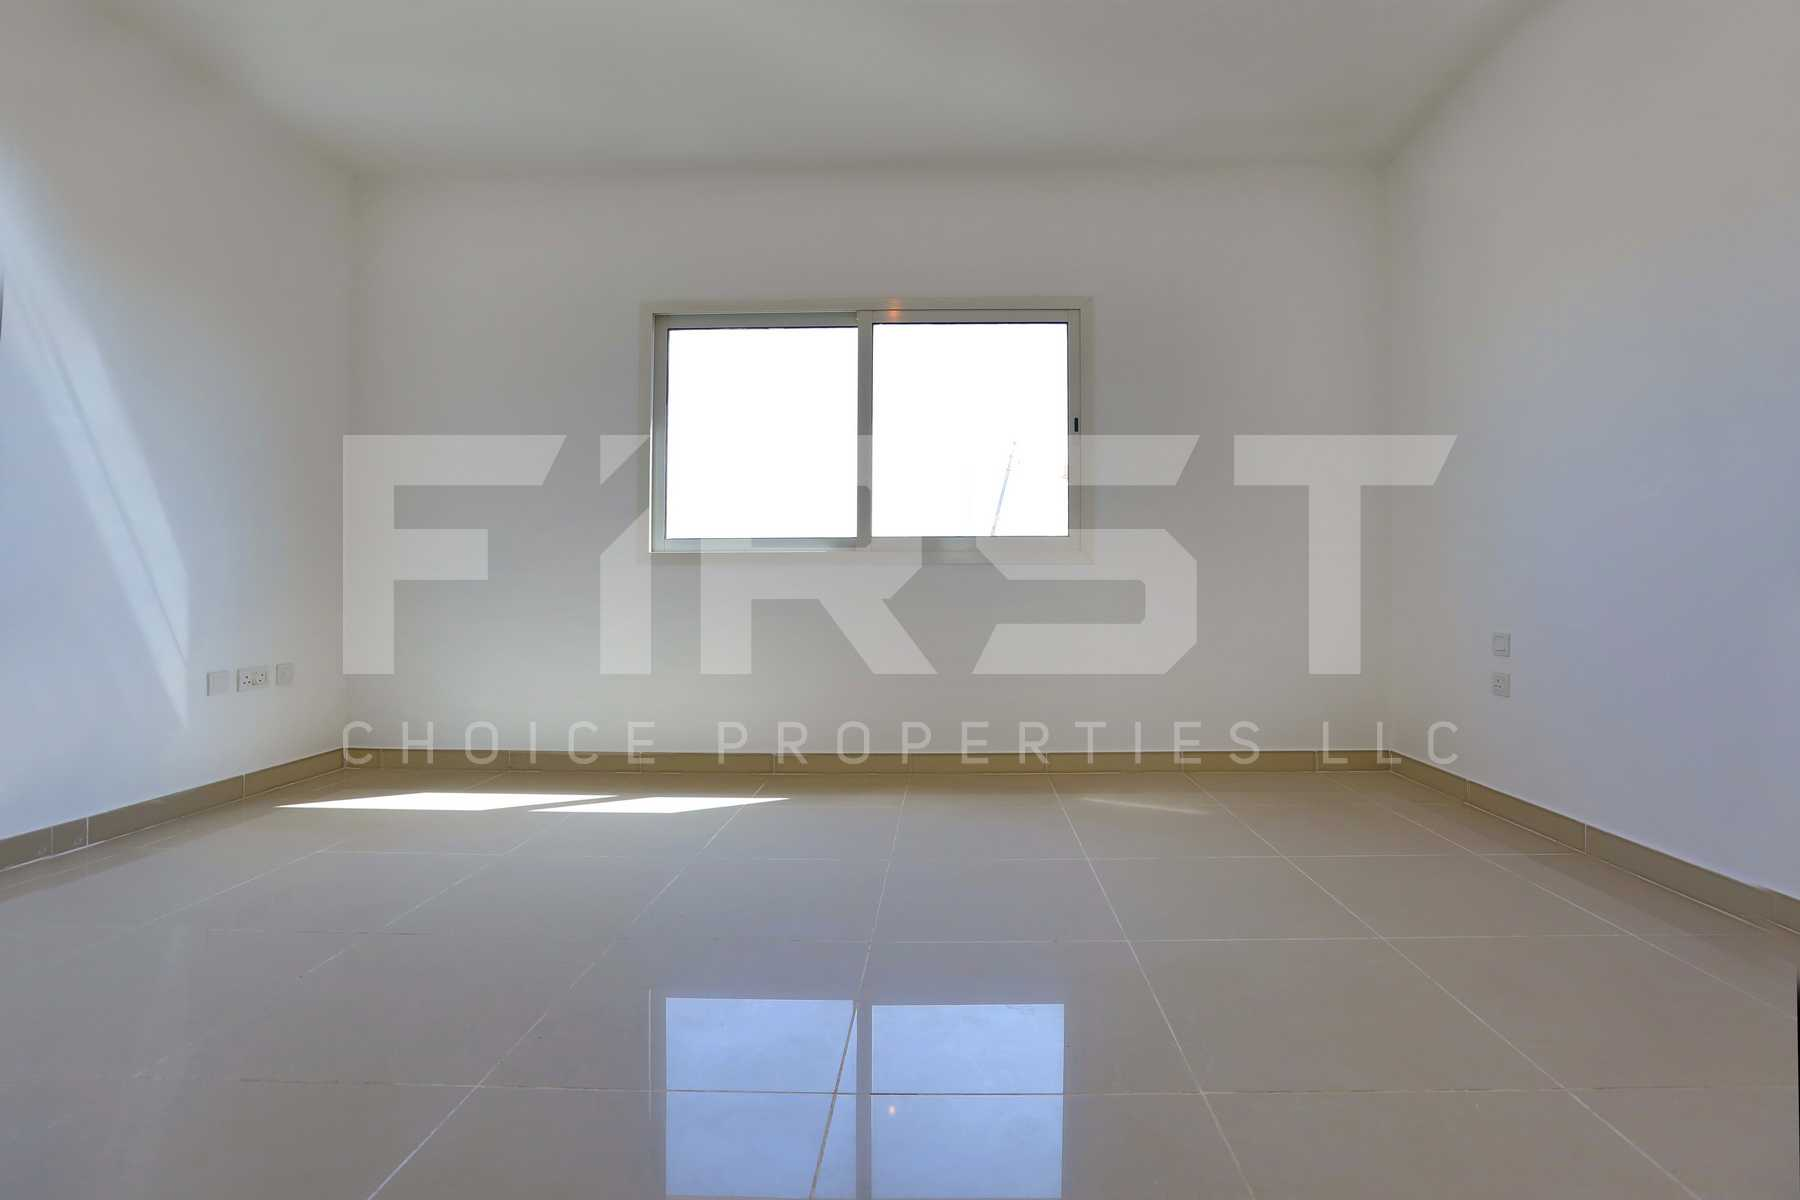 8. Internal Photo of 3 Bedroom Villa in Al Reef Villas Al Reef Abu Dhabi UAE 225.2 sq.m 2424 sq.ft (27).jpg